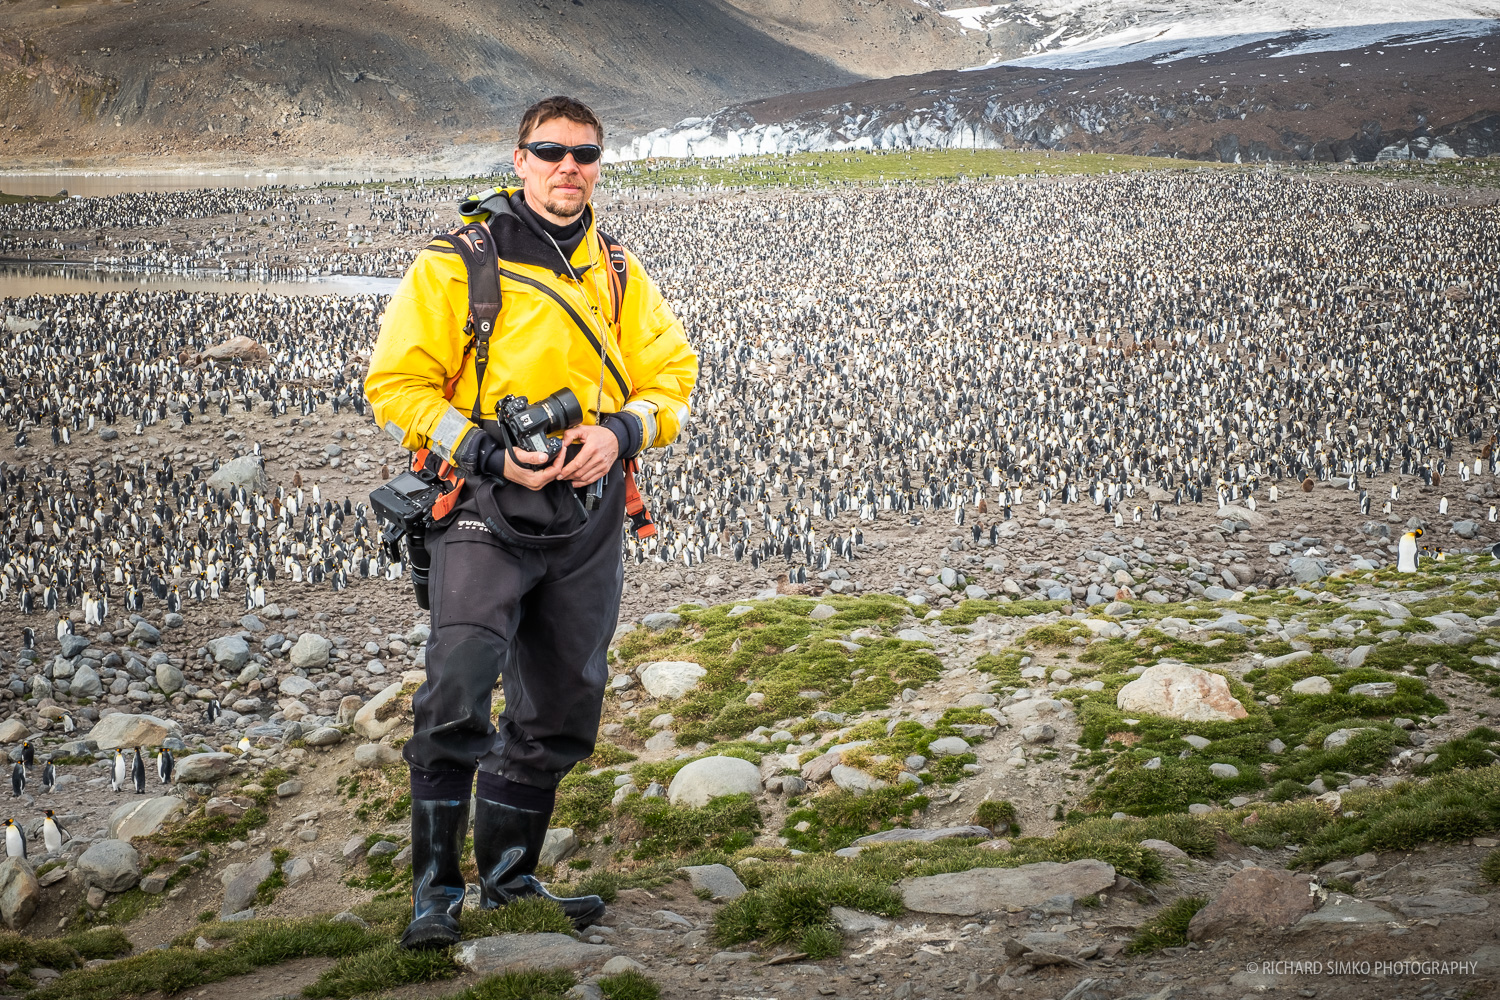 My hero photo at St Andrews in South Georgia. This is the location where we could see the largest king penguin colony in the island and perhaps the whole world.